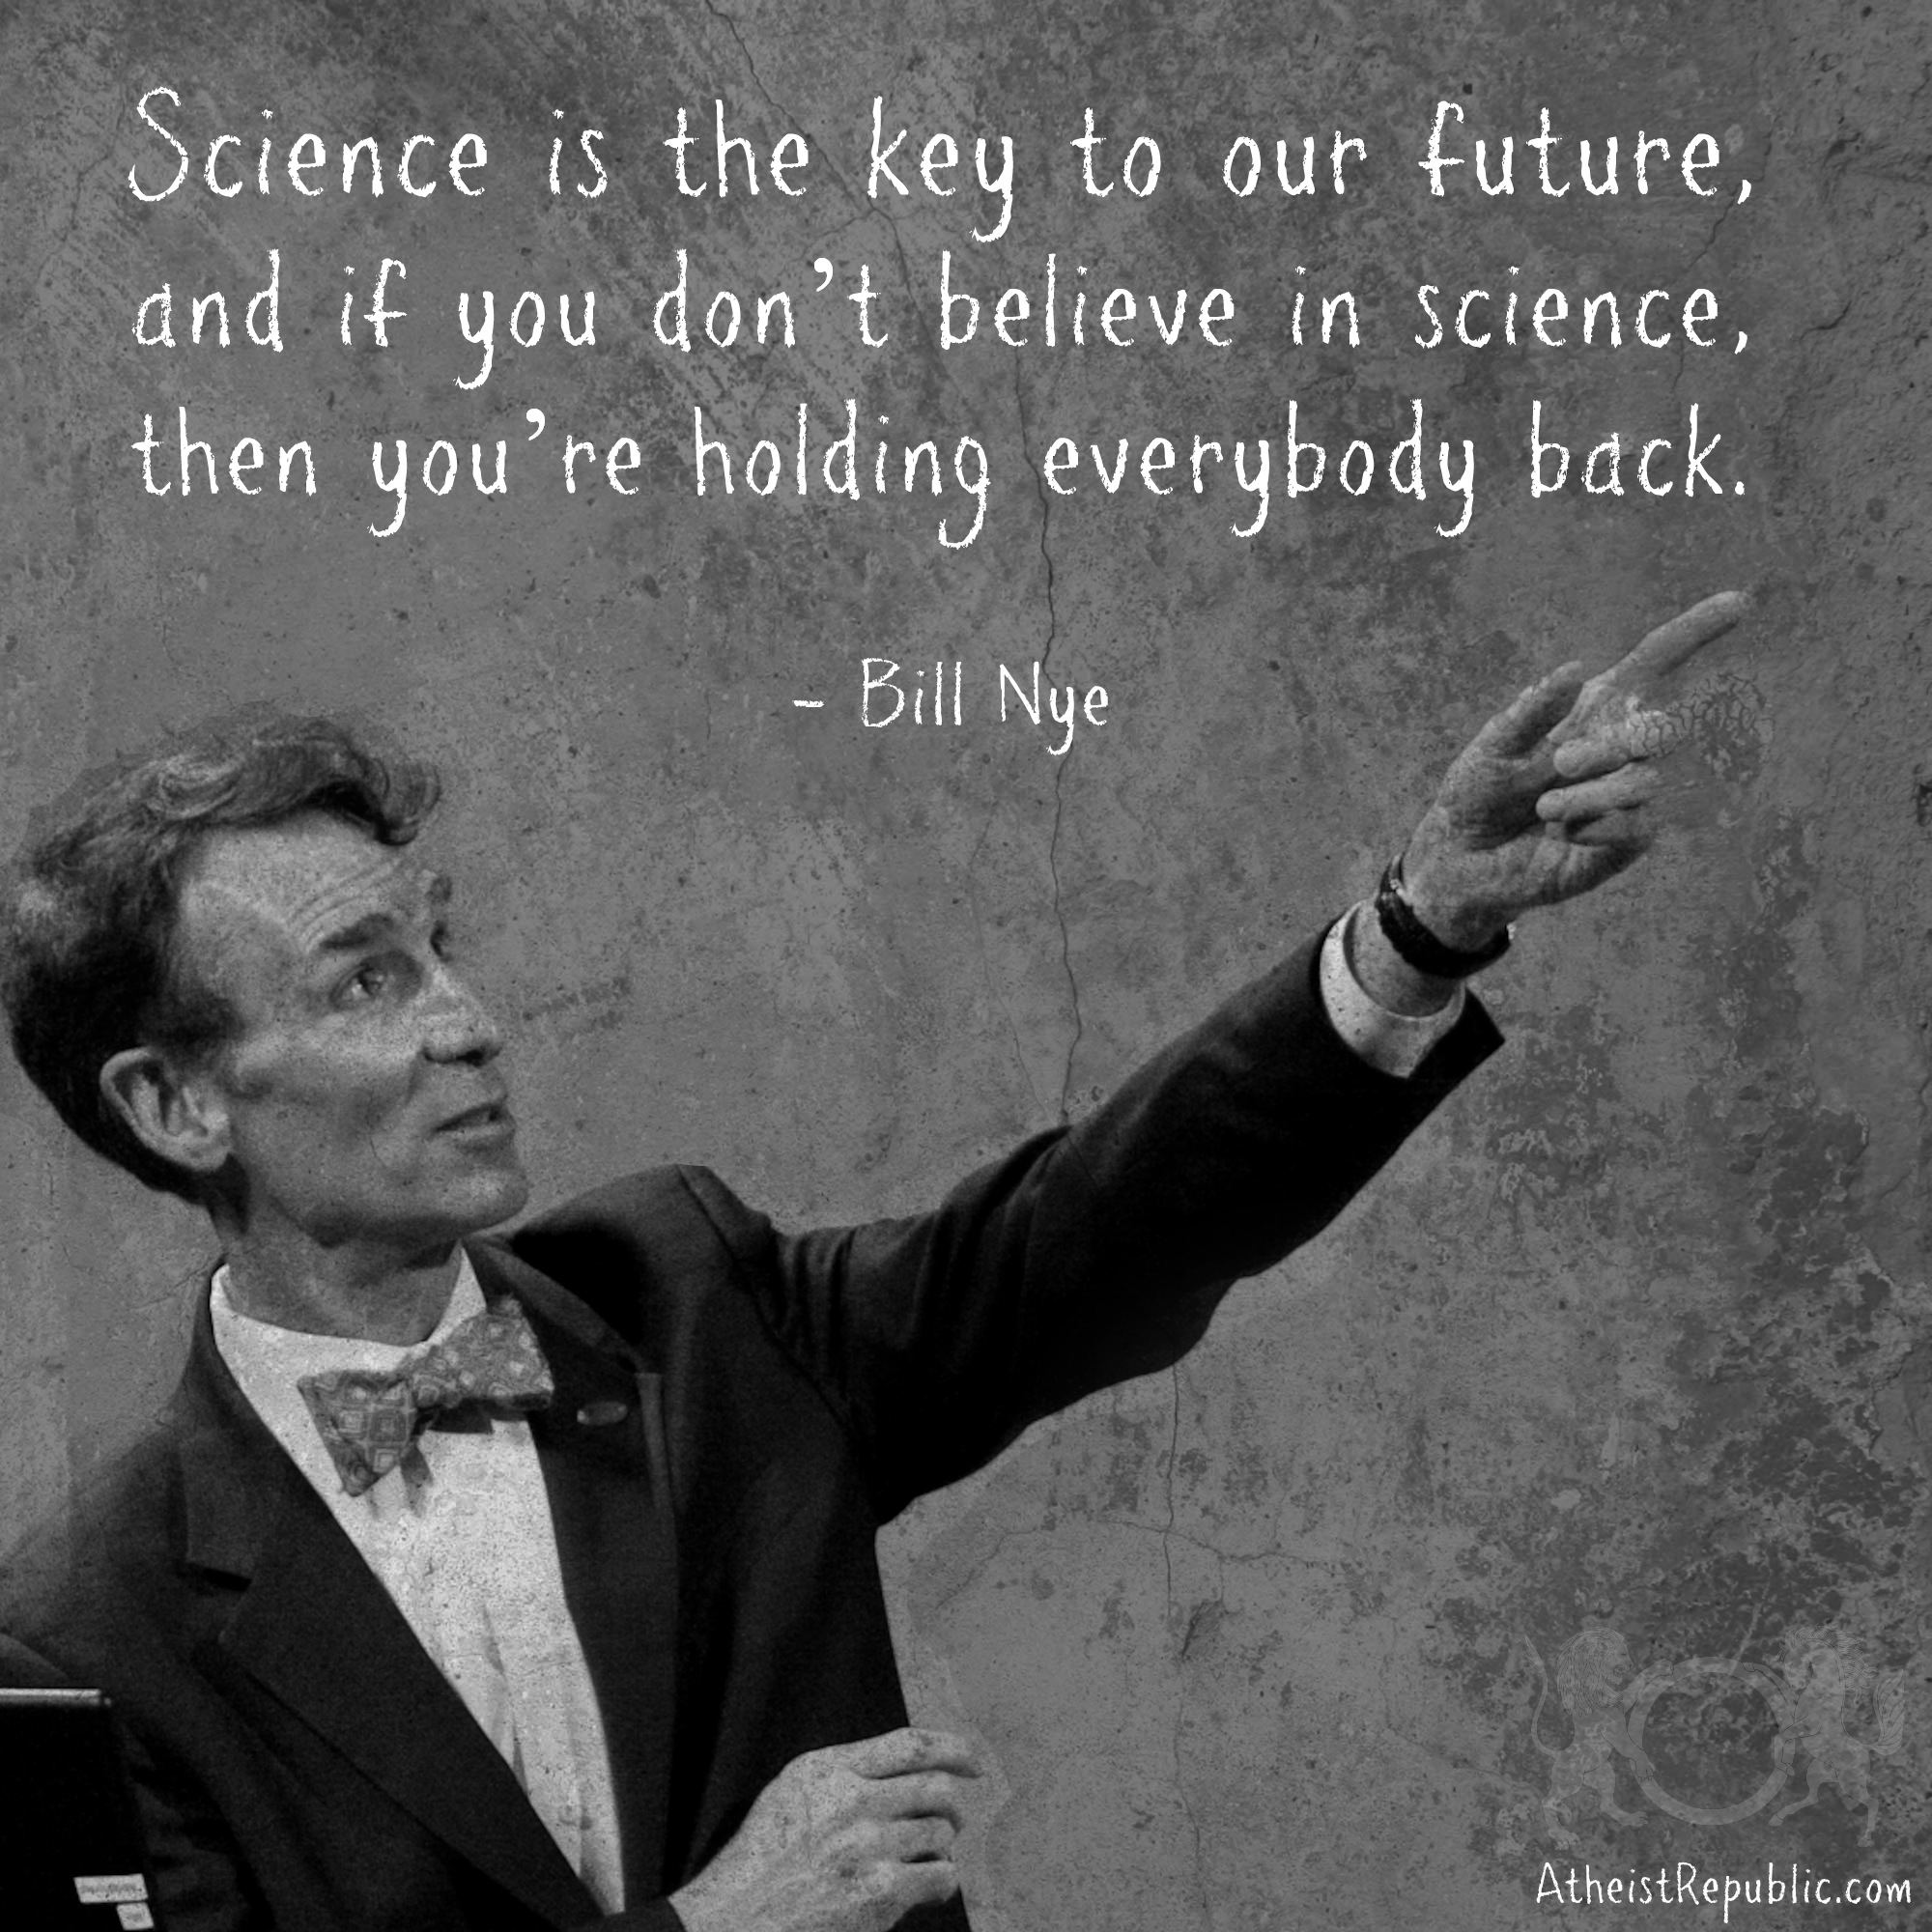 Science Key Future And